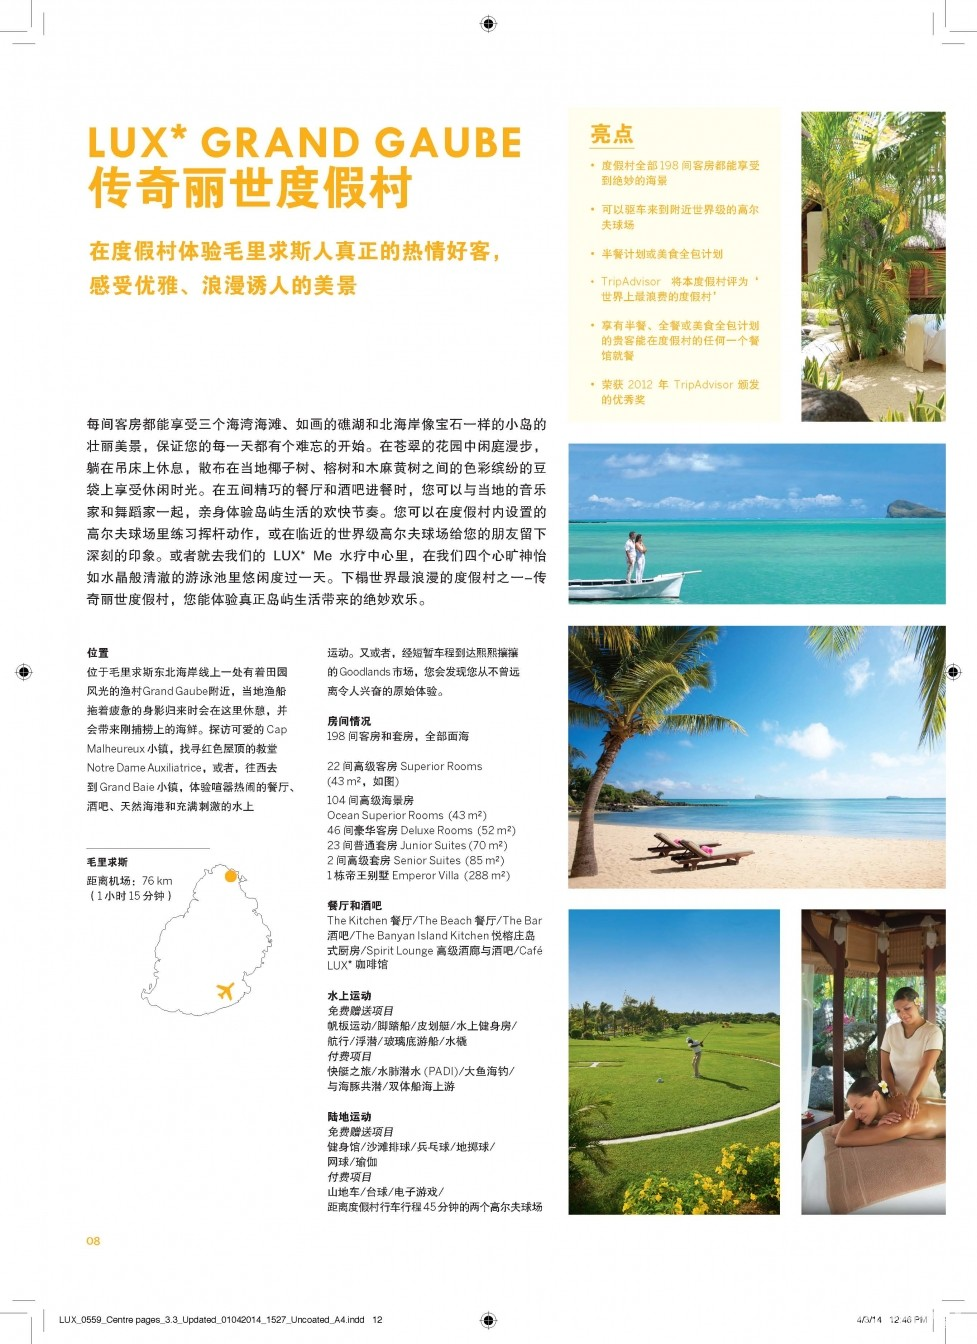 丽世酒店资料 LUX Resorts Info 12.jpg